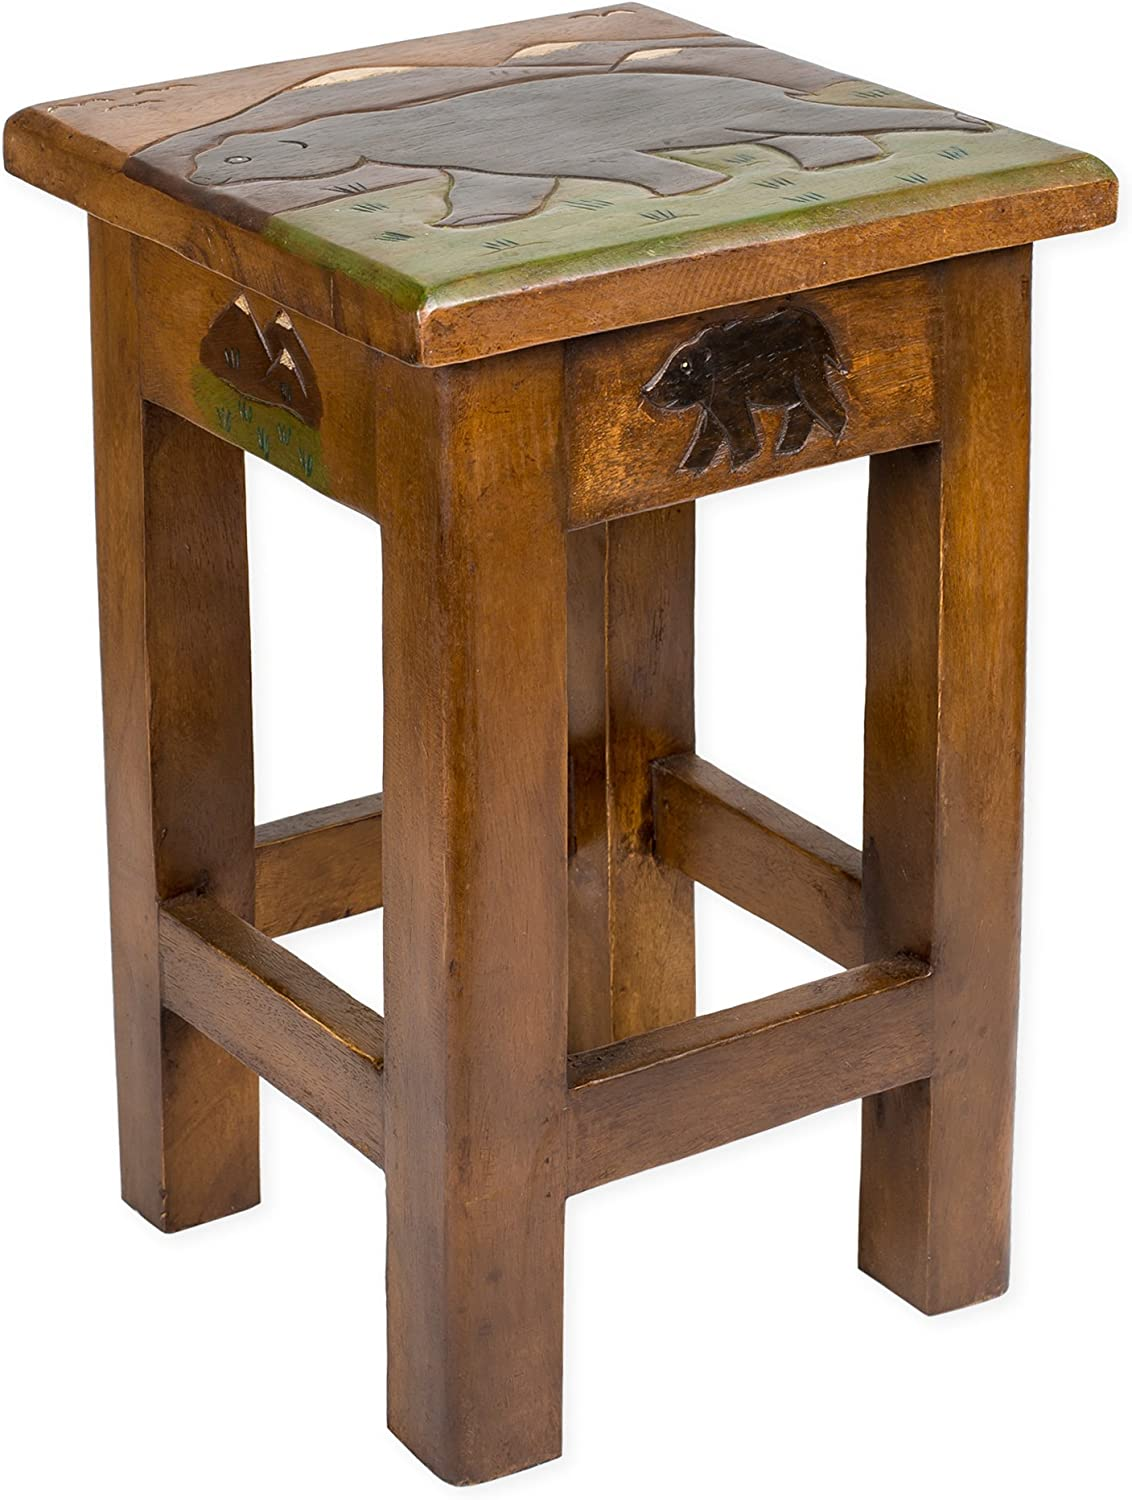 Bear Carved Acacia Hardwood 18 Inch End Table